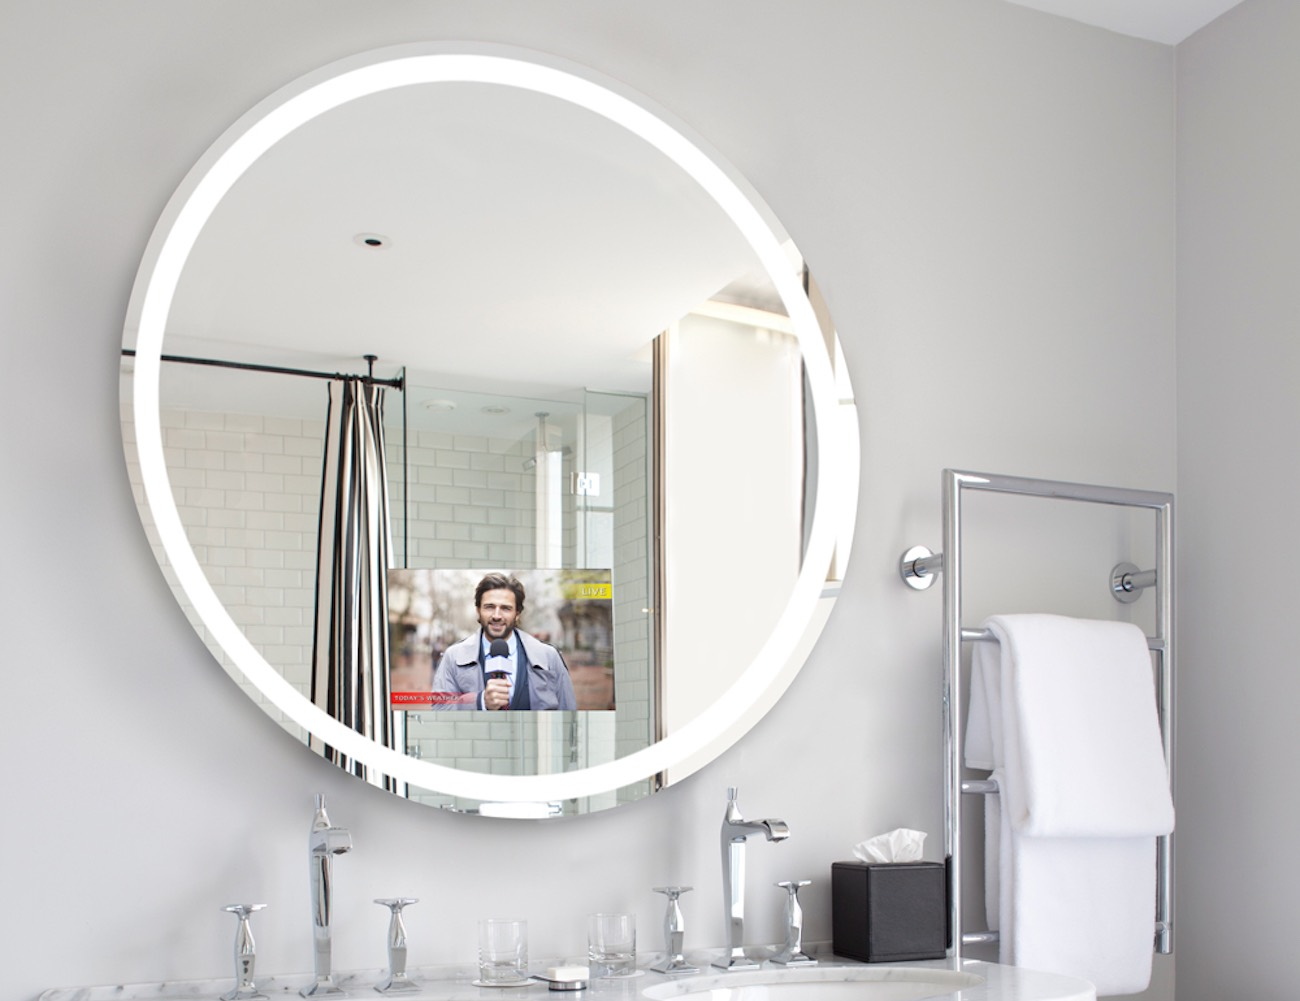 Bathroom Mirrors With Tv Built In Gadget News 6 Mar 2016 15 Minute News Know The News